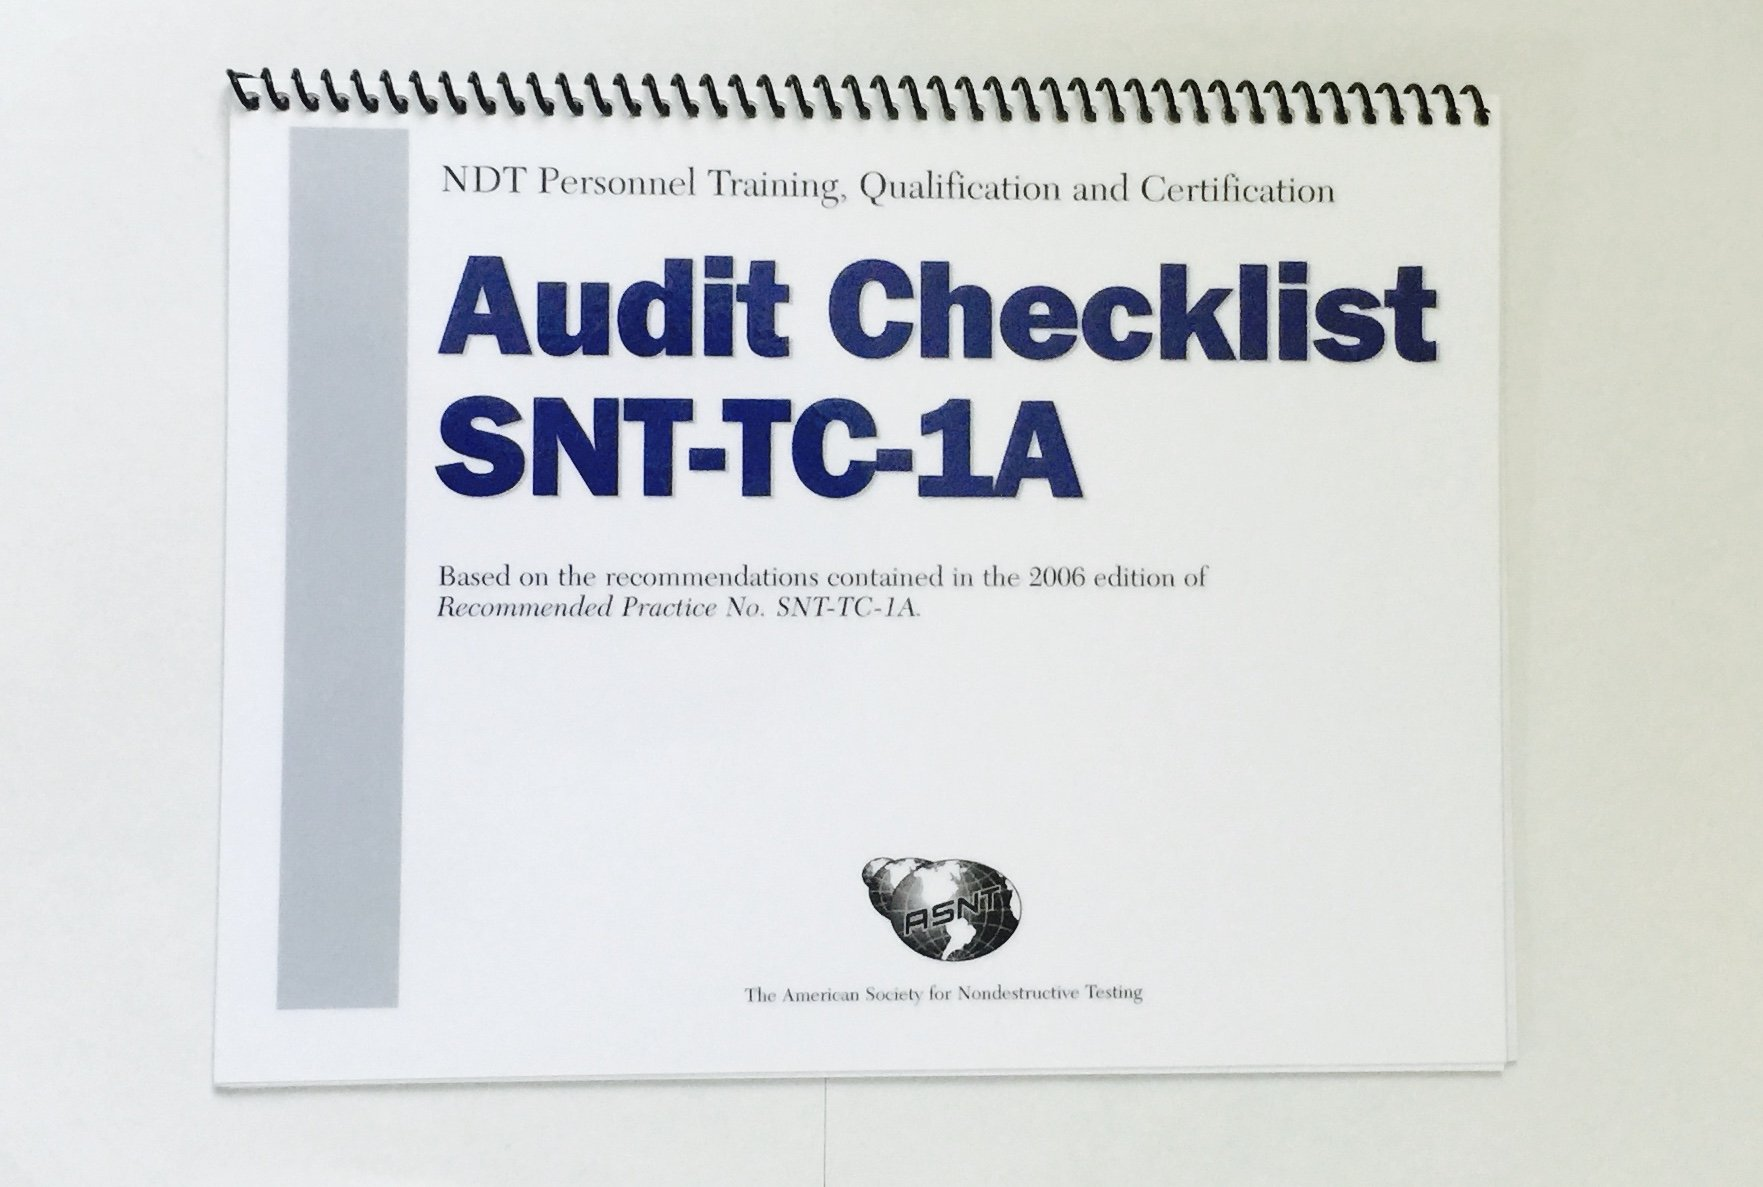 Ndt Personnel Training Qualification Certification Audit